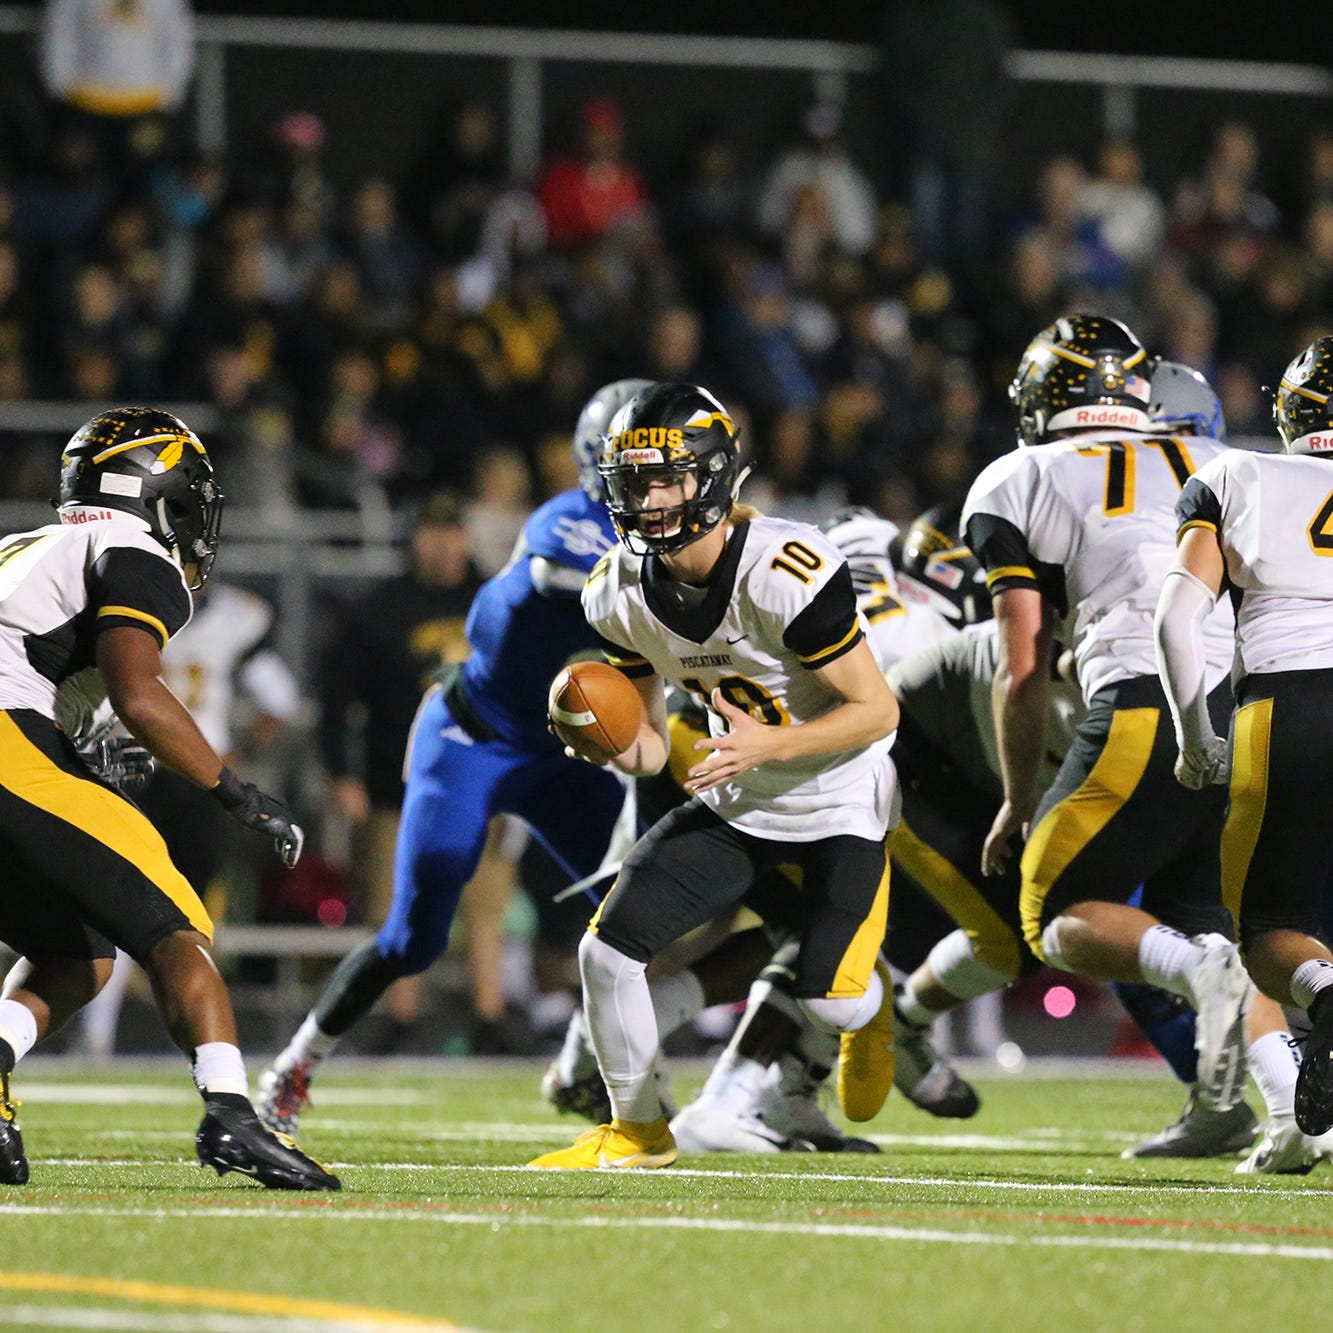 NJ football: All of Friday's Week 7 GMC game stories